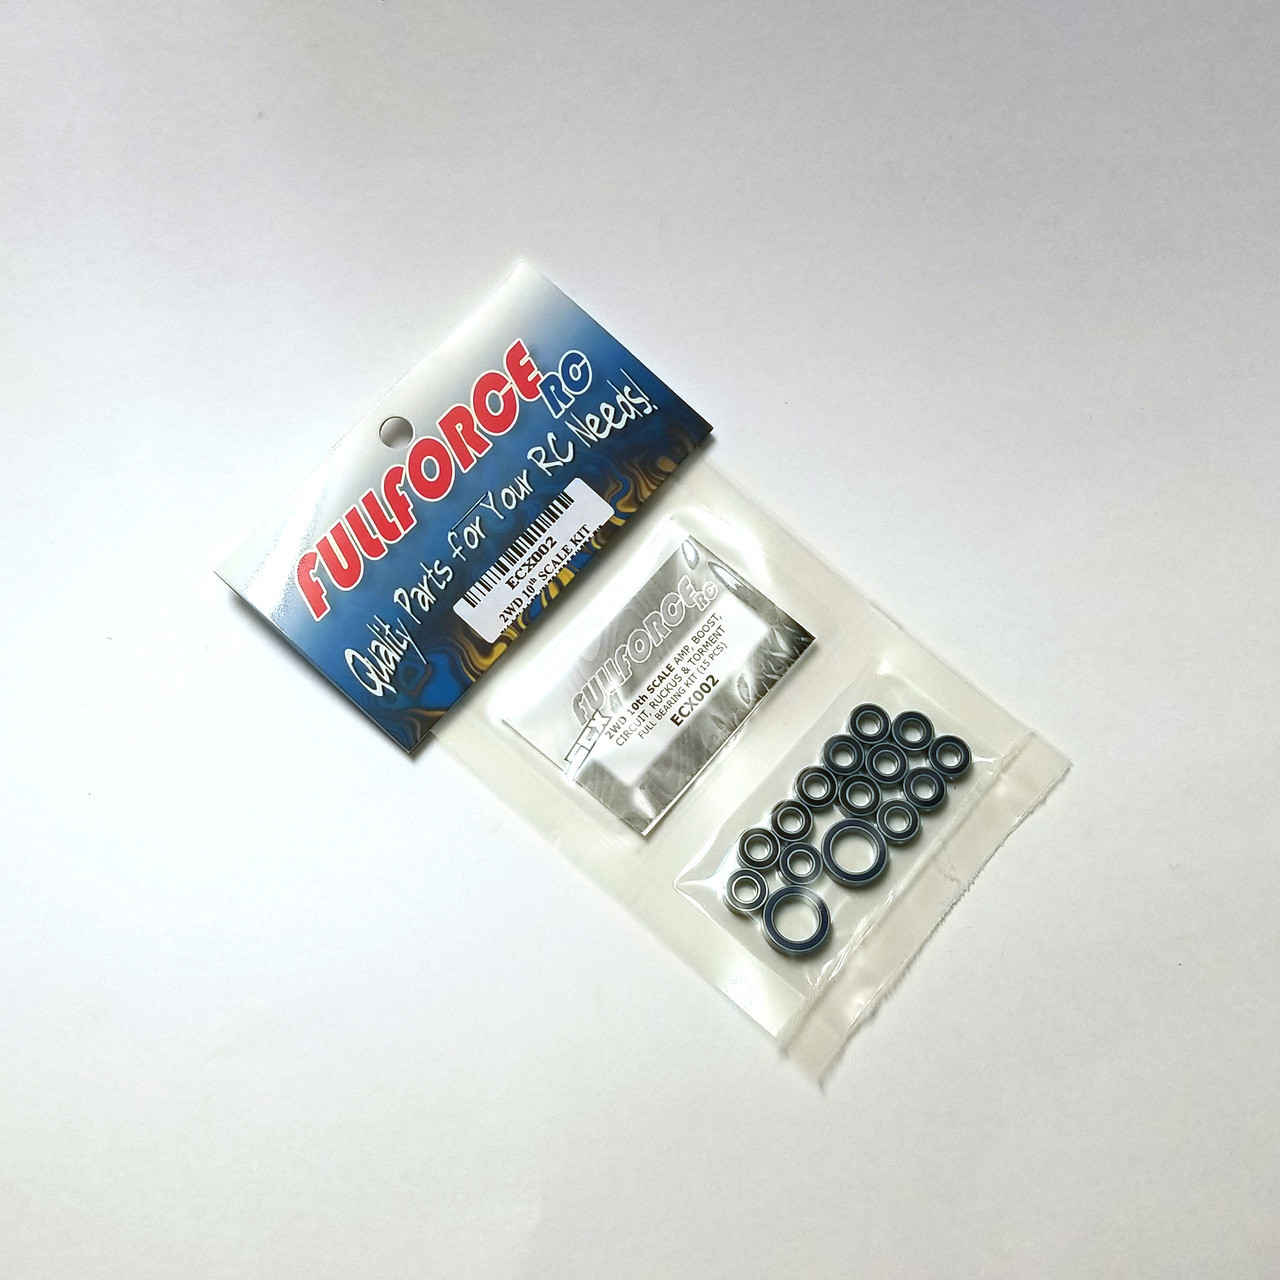 ECX 2WD 10th Scale full bearing kits packed and ready to ship!